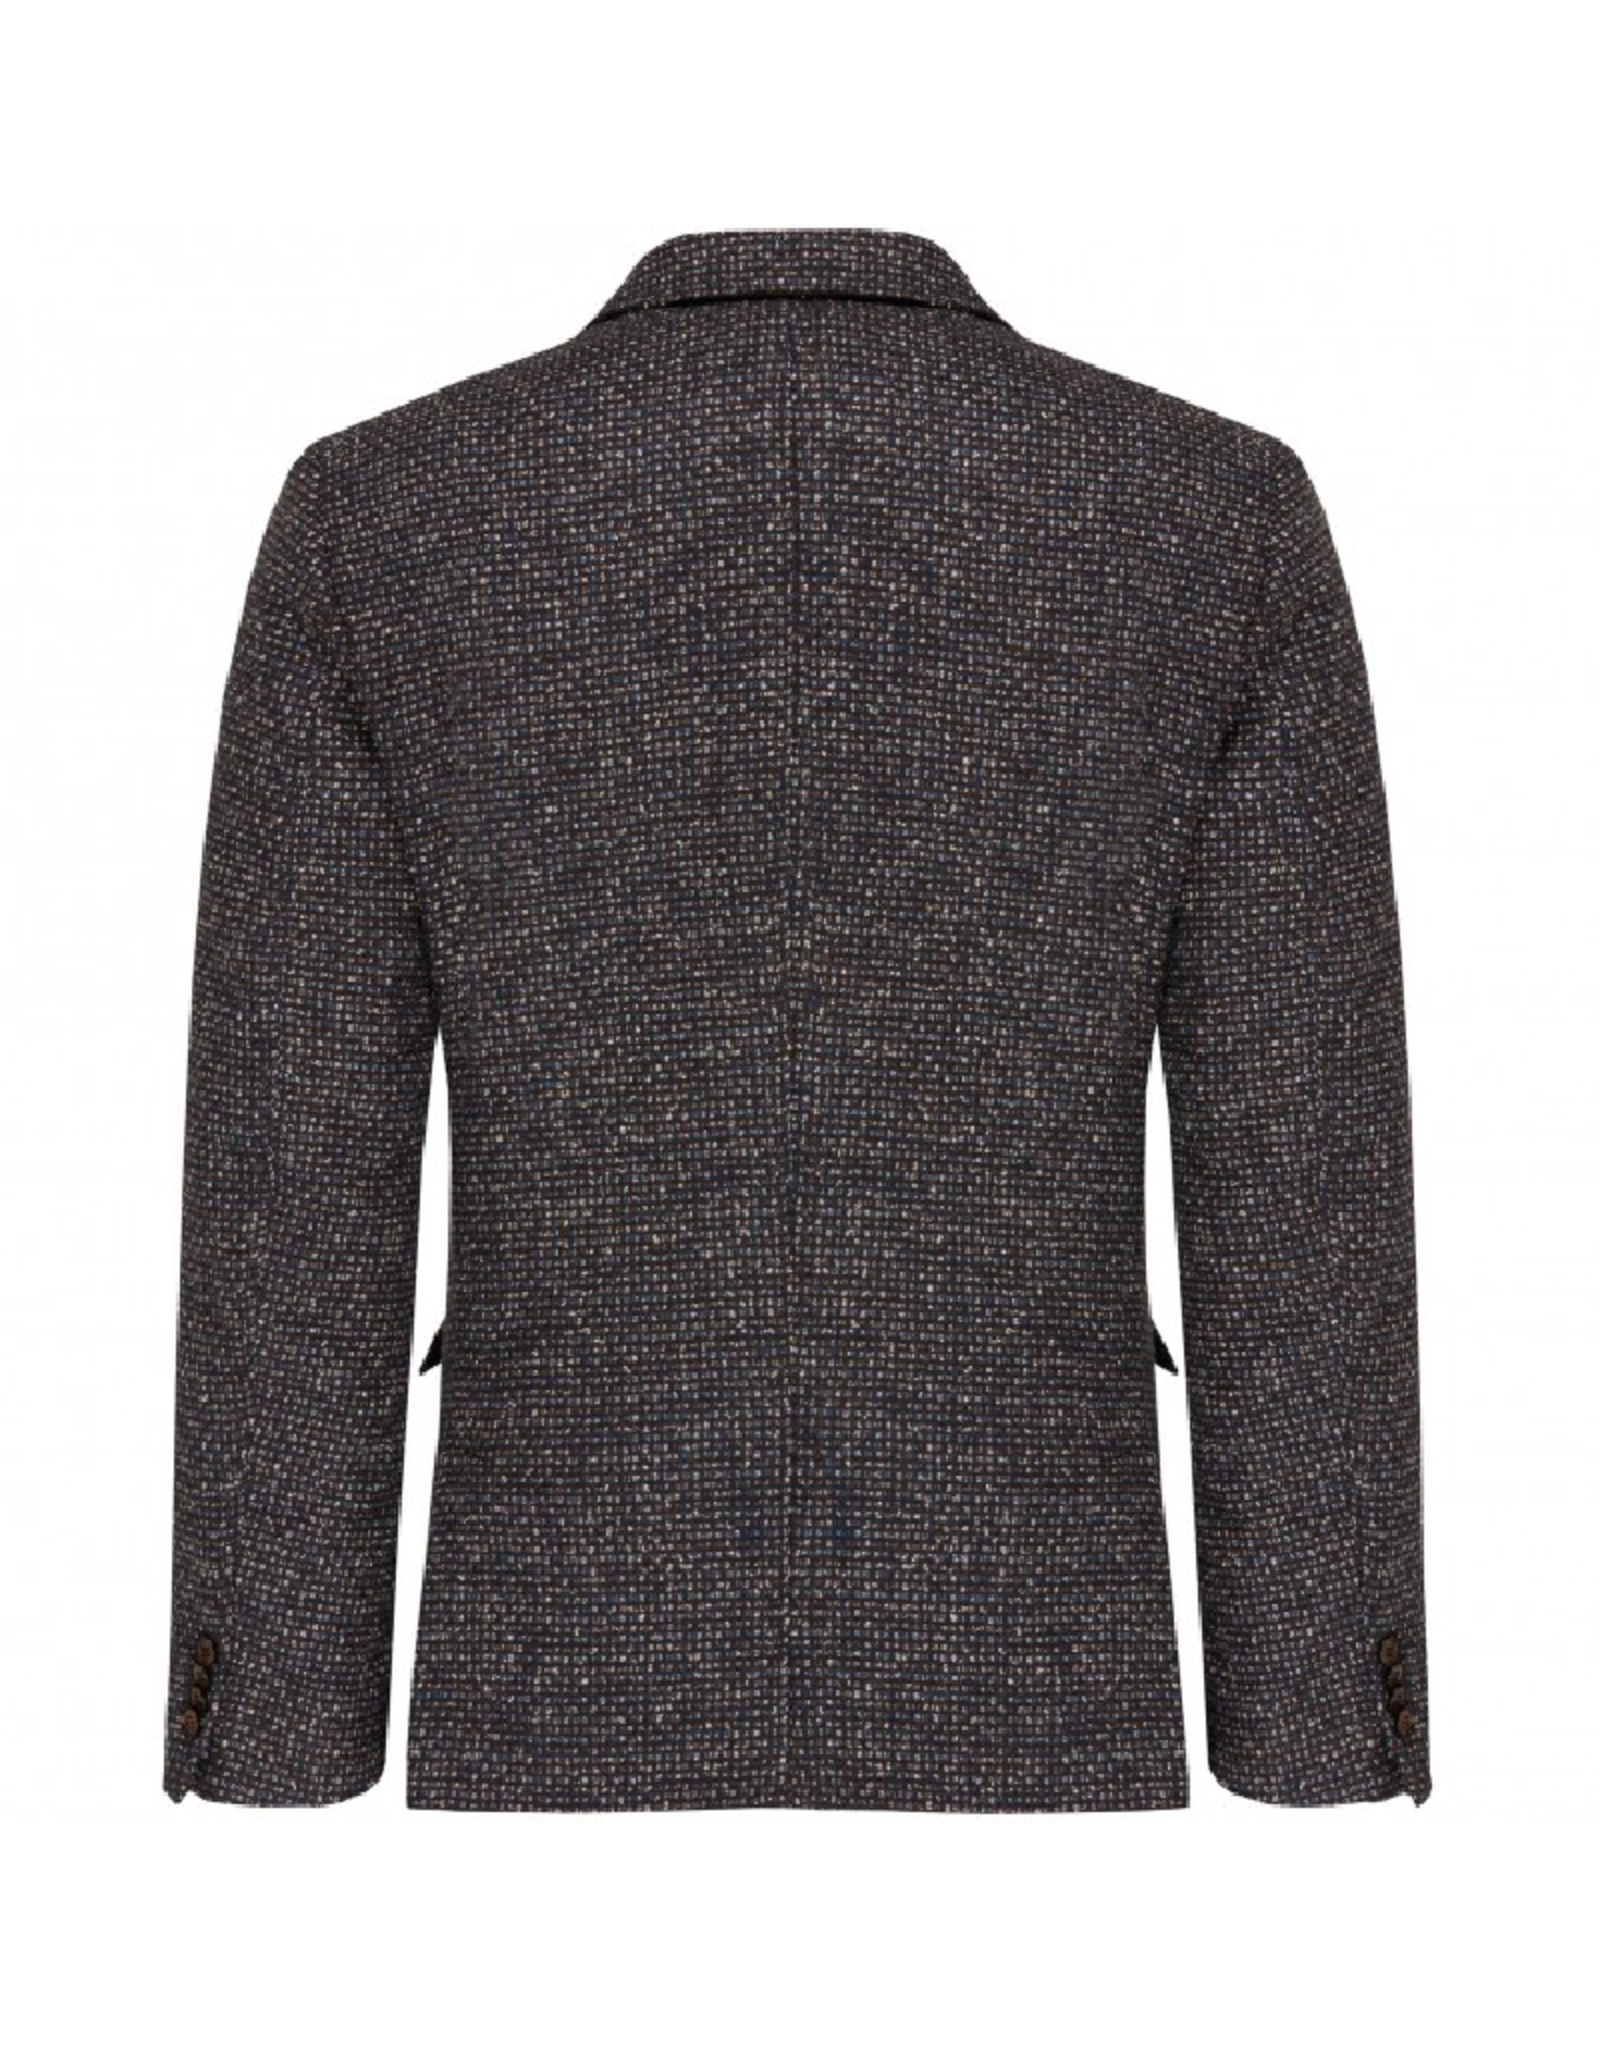 Club Of Gents Aston Speckled Soft Jacket